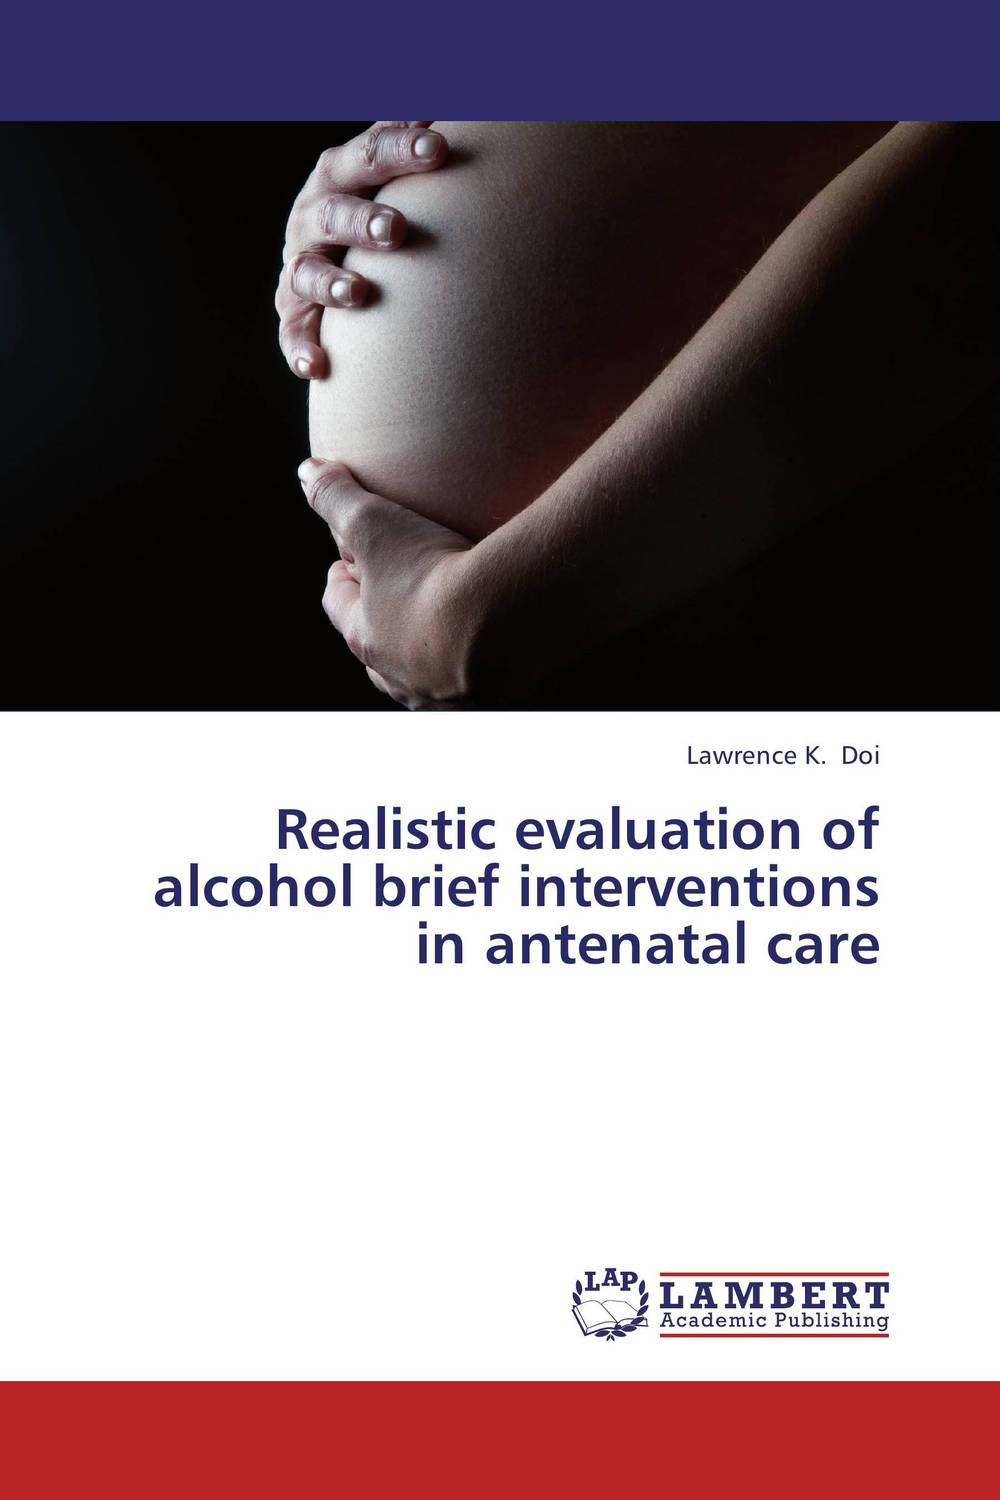 цены Realistic evaluation of alcohol brief interventions in antenatal care